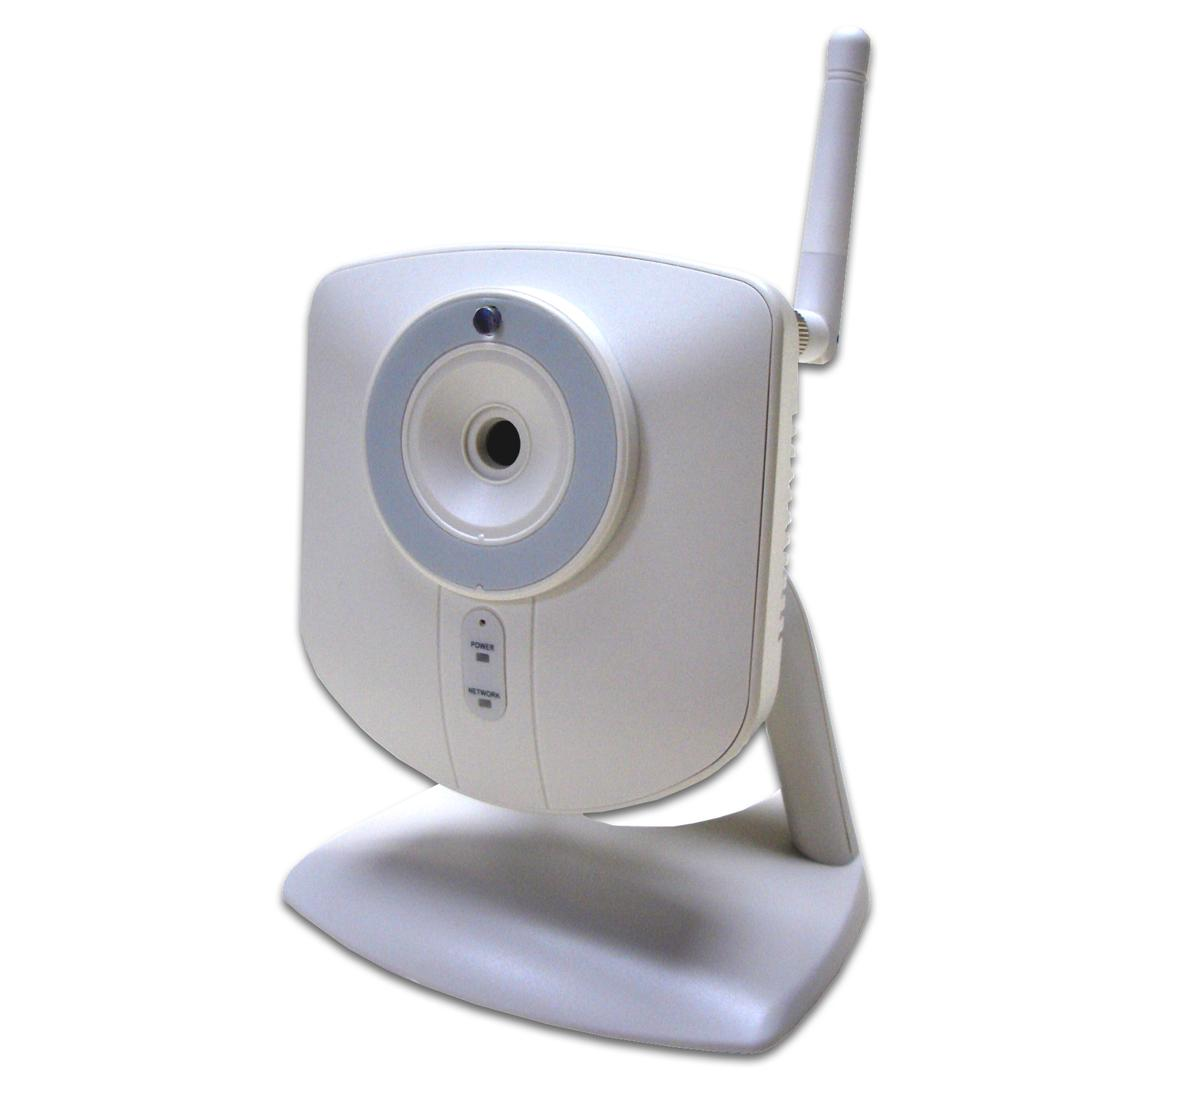 Adt pulse indoor wireless camera rc8021 buy now 149 for Interior home security cameras